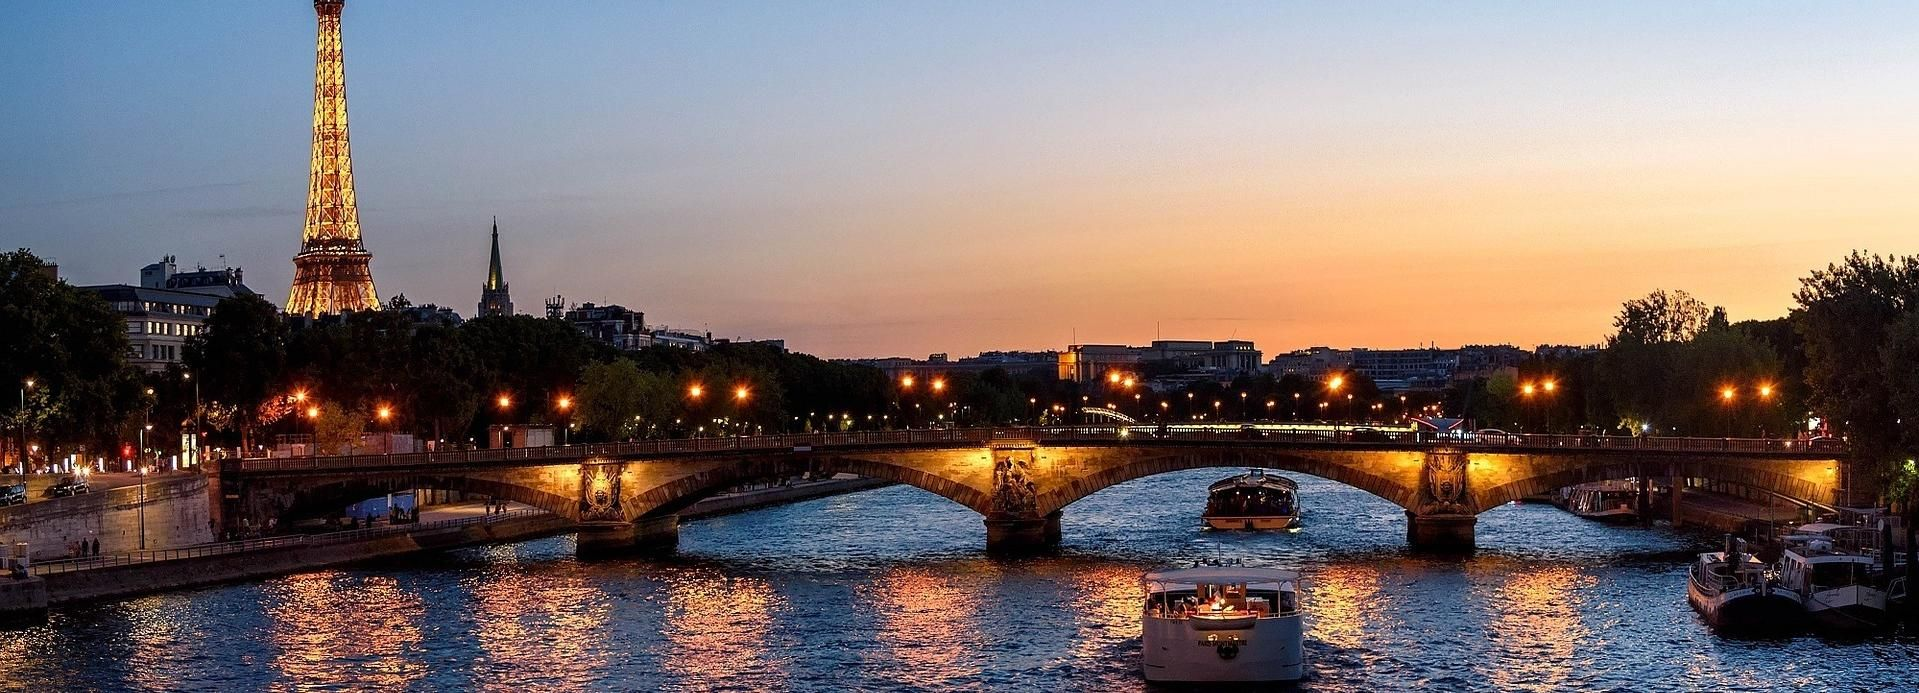 Paris: Eiffel Tower Direct Summit Access & Cruise by Night